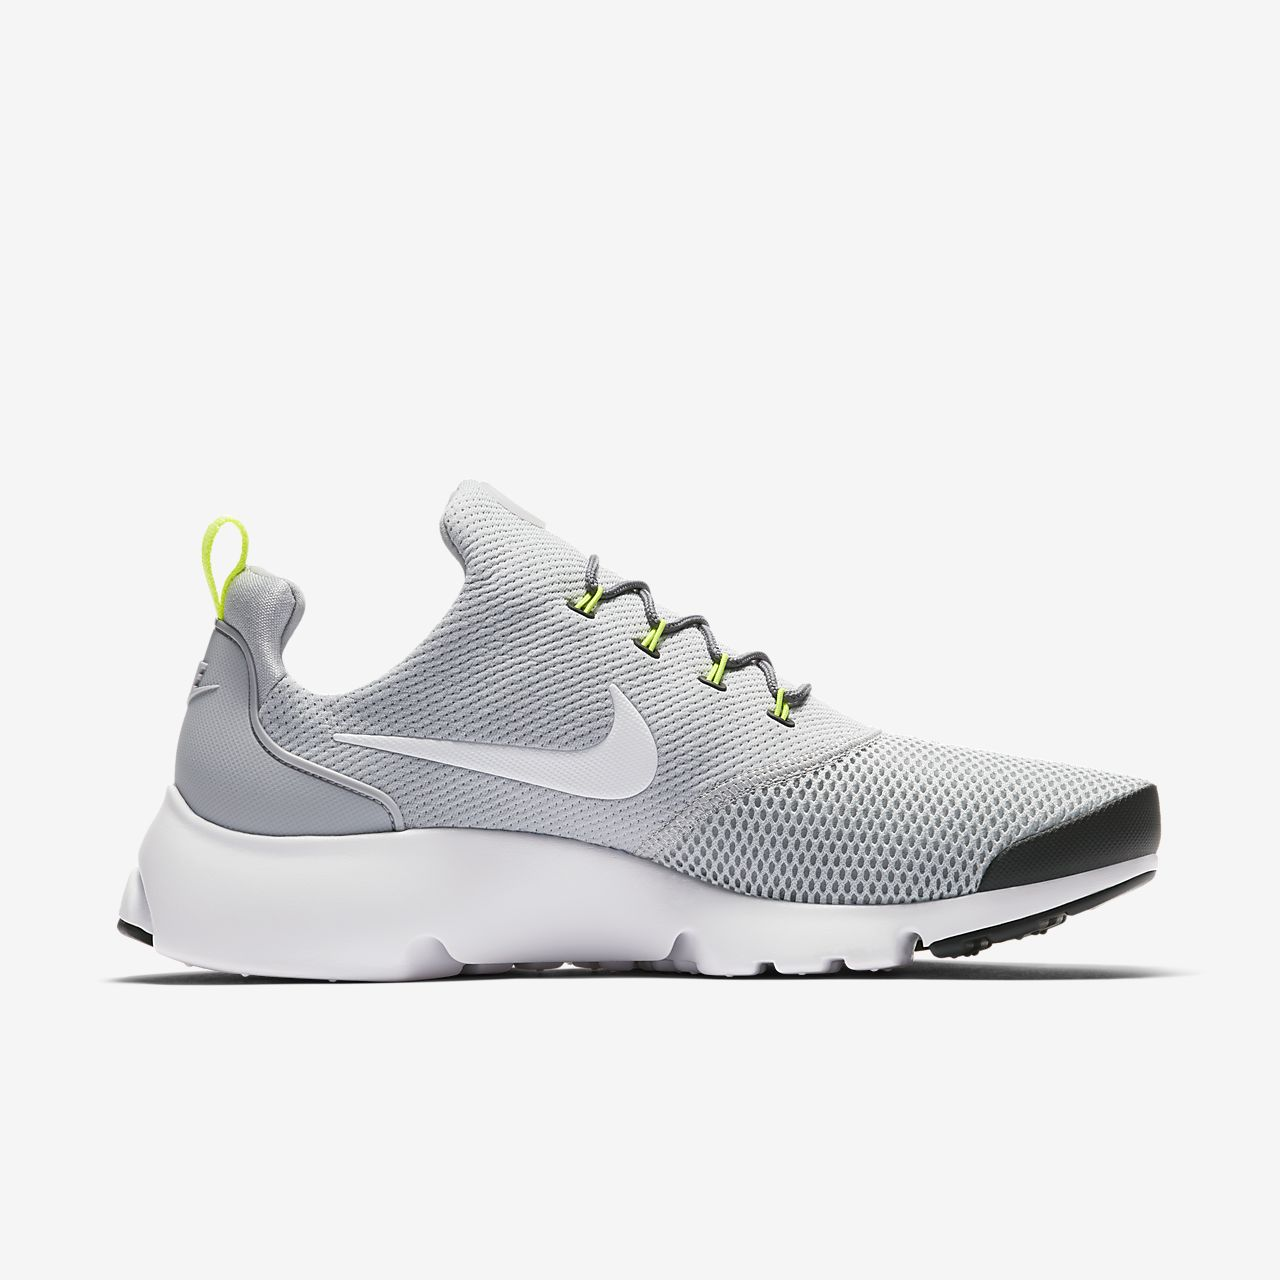 Nike Presto Fly Hommes Running Trainers 908019 Sneakers Chaussures 008 PdJ4orP